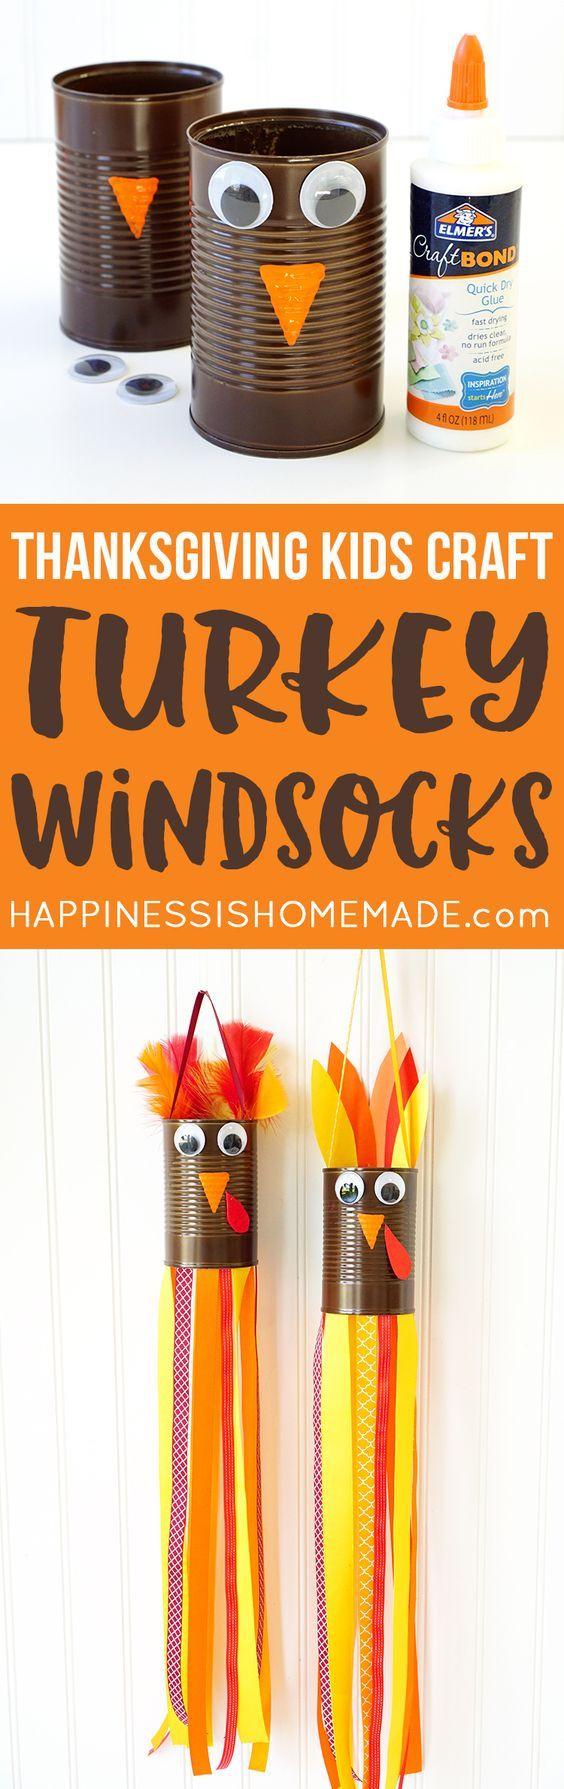 Tin cans for crafts - Need A Quick And Easy Thanksgiving Kids Craft These Adorable Turkey Windsocks Made From Recycled